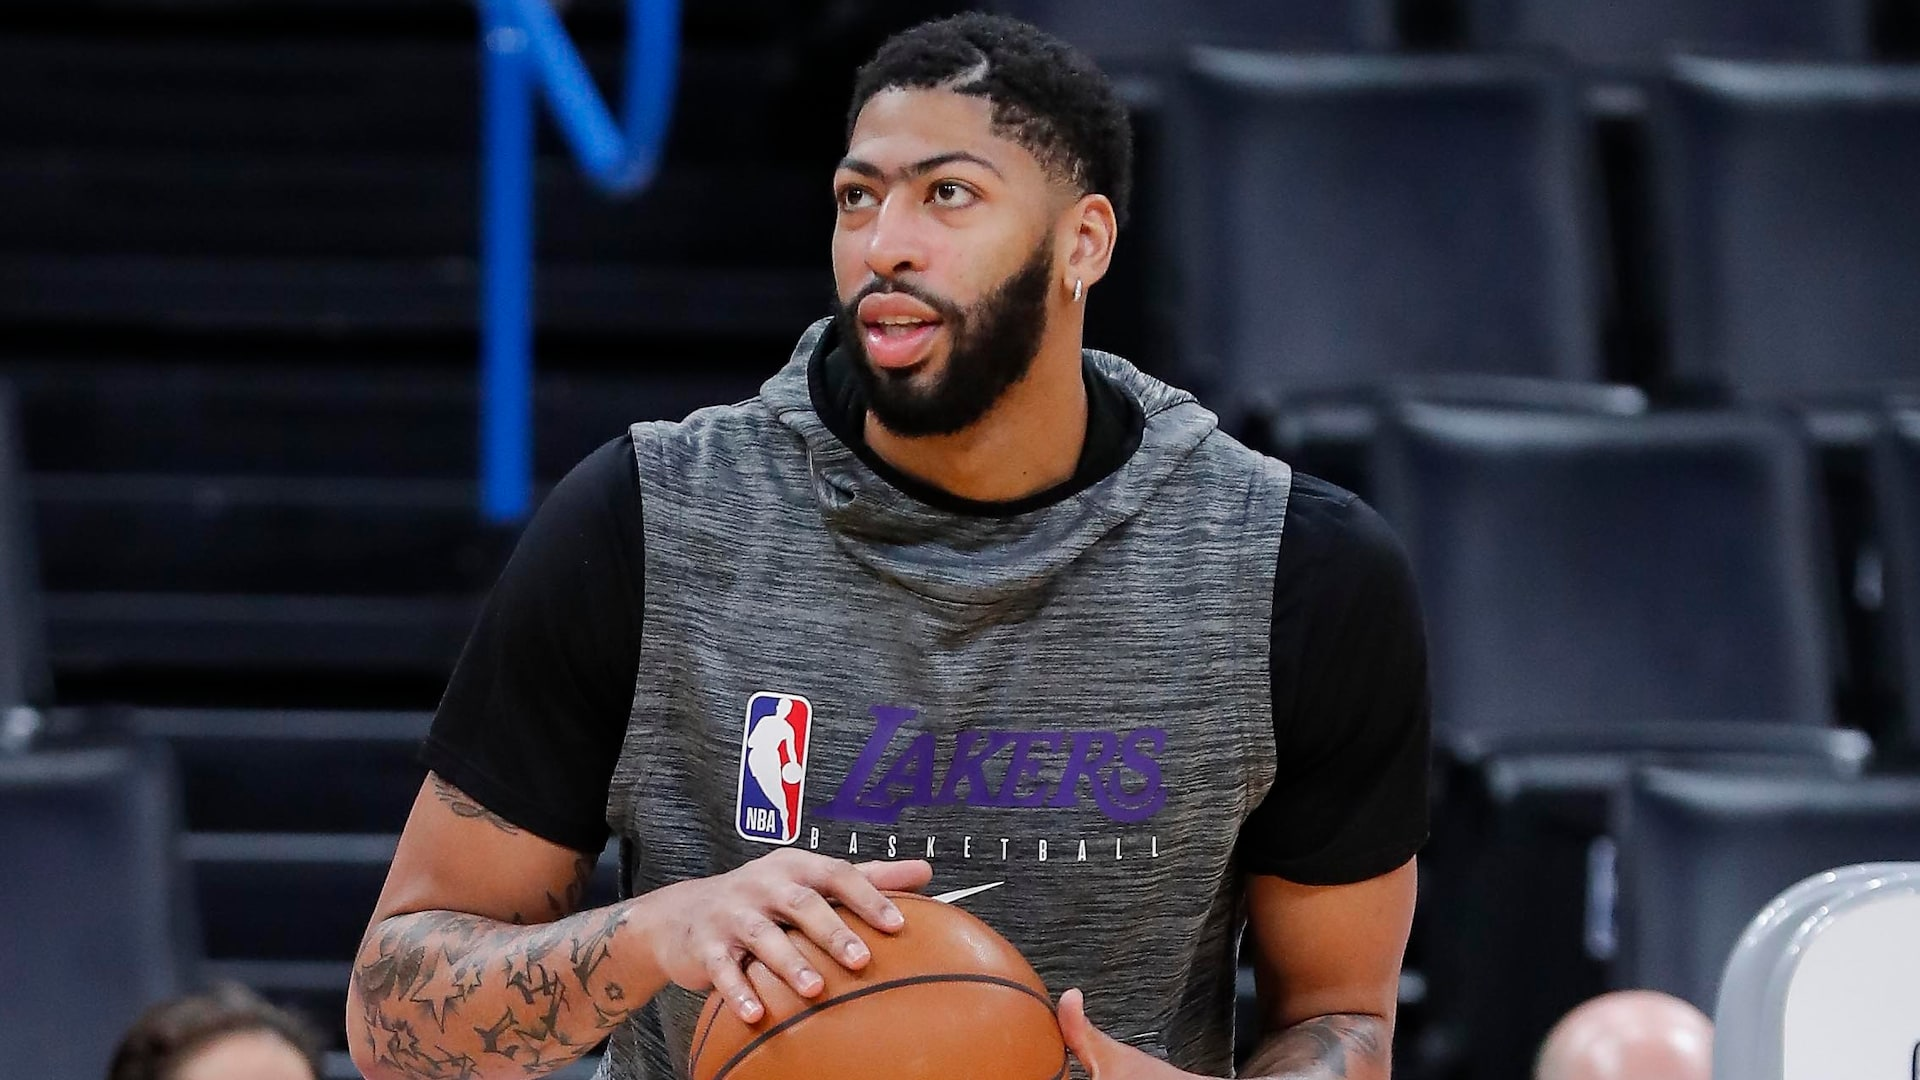 Lakers' Anthony Davis 'getting closer' to return